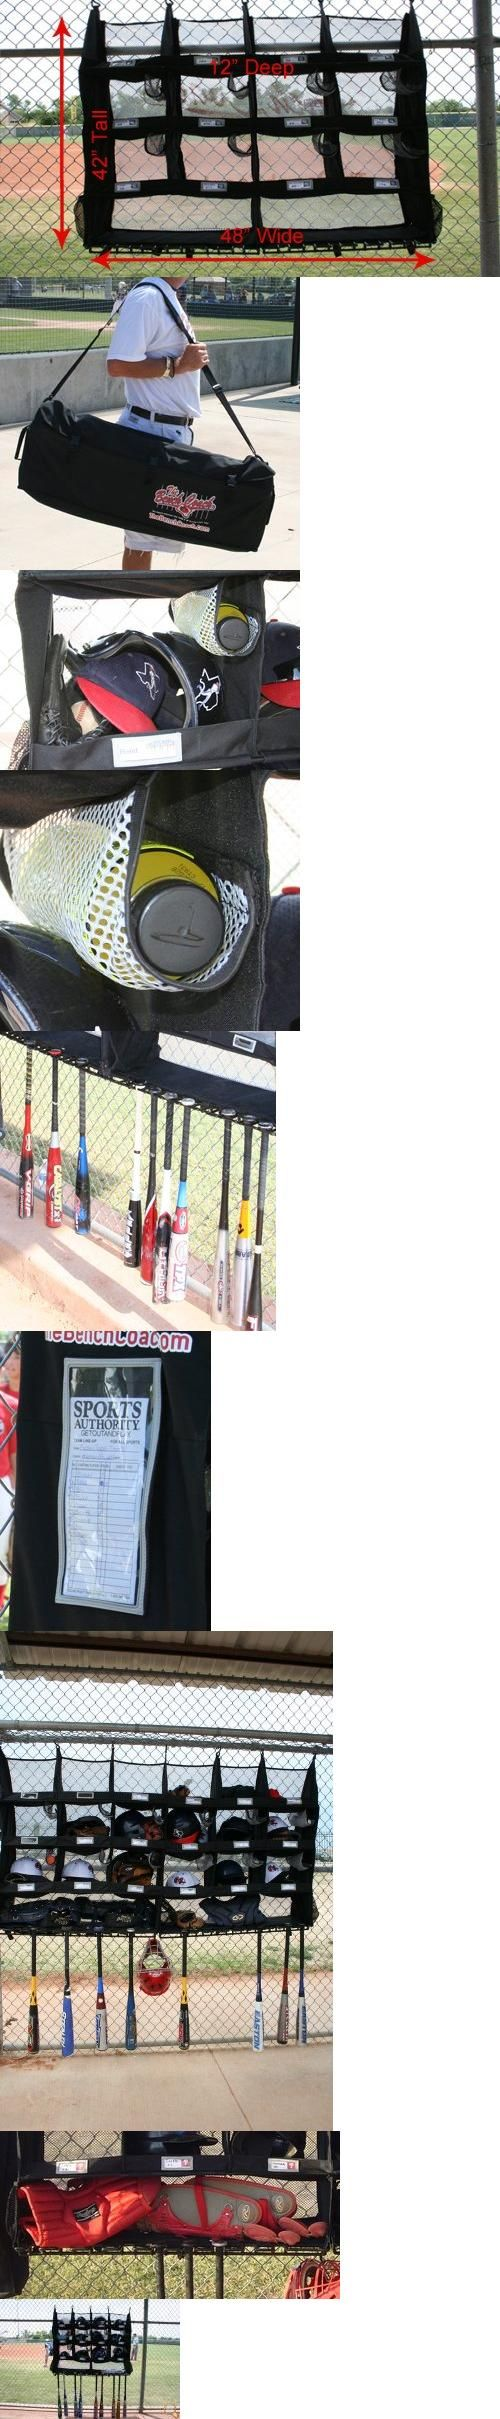 The Benchcoach R12 Baseball Softball Dugout Organizer Player Coach Gear Station, The most complete, portable dugout organizing system for baseball and softball teams. The BenchCoach is a team-centered system that gives your dugout the same look, feel and organization of a major l..., #Sporting Goods, #Gear Bags